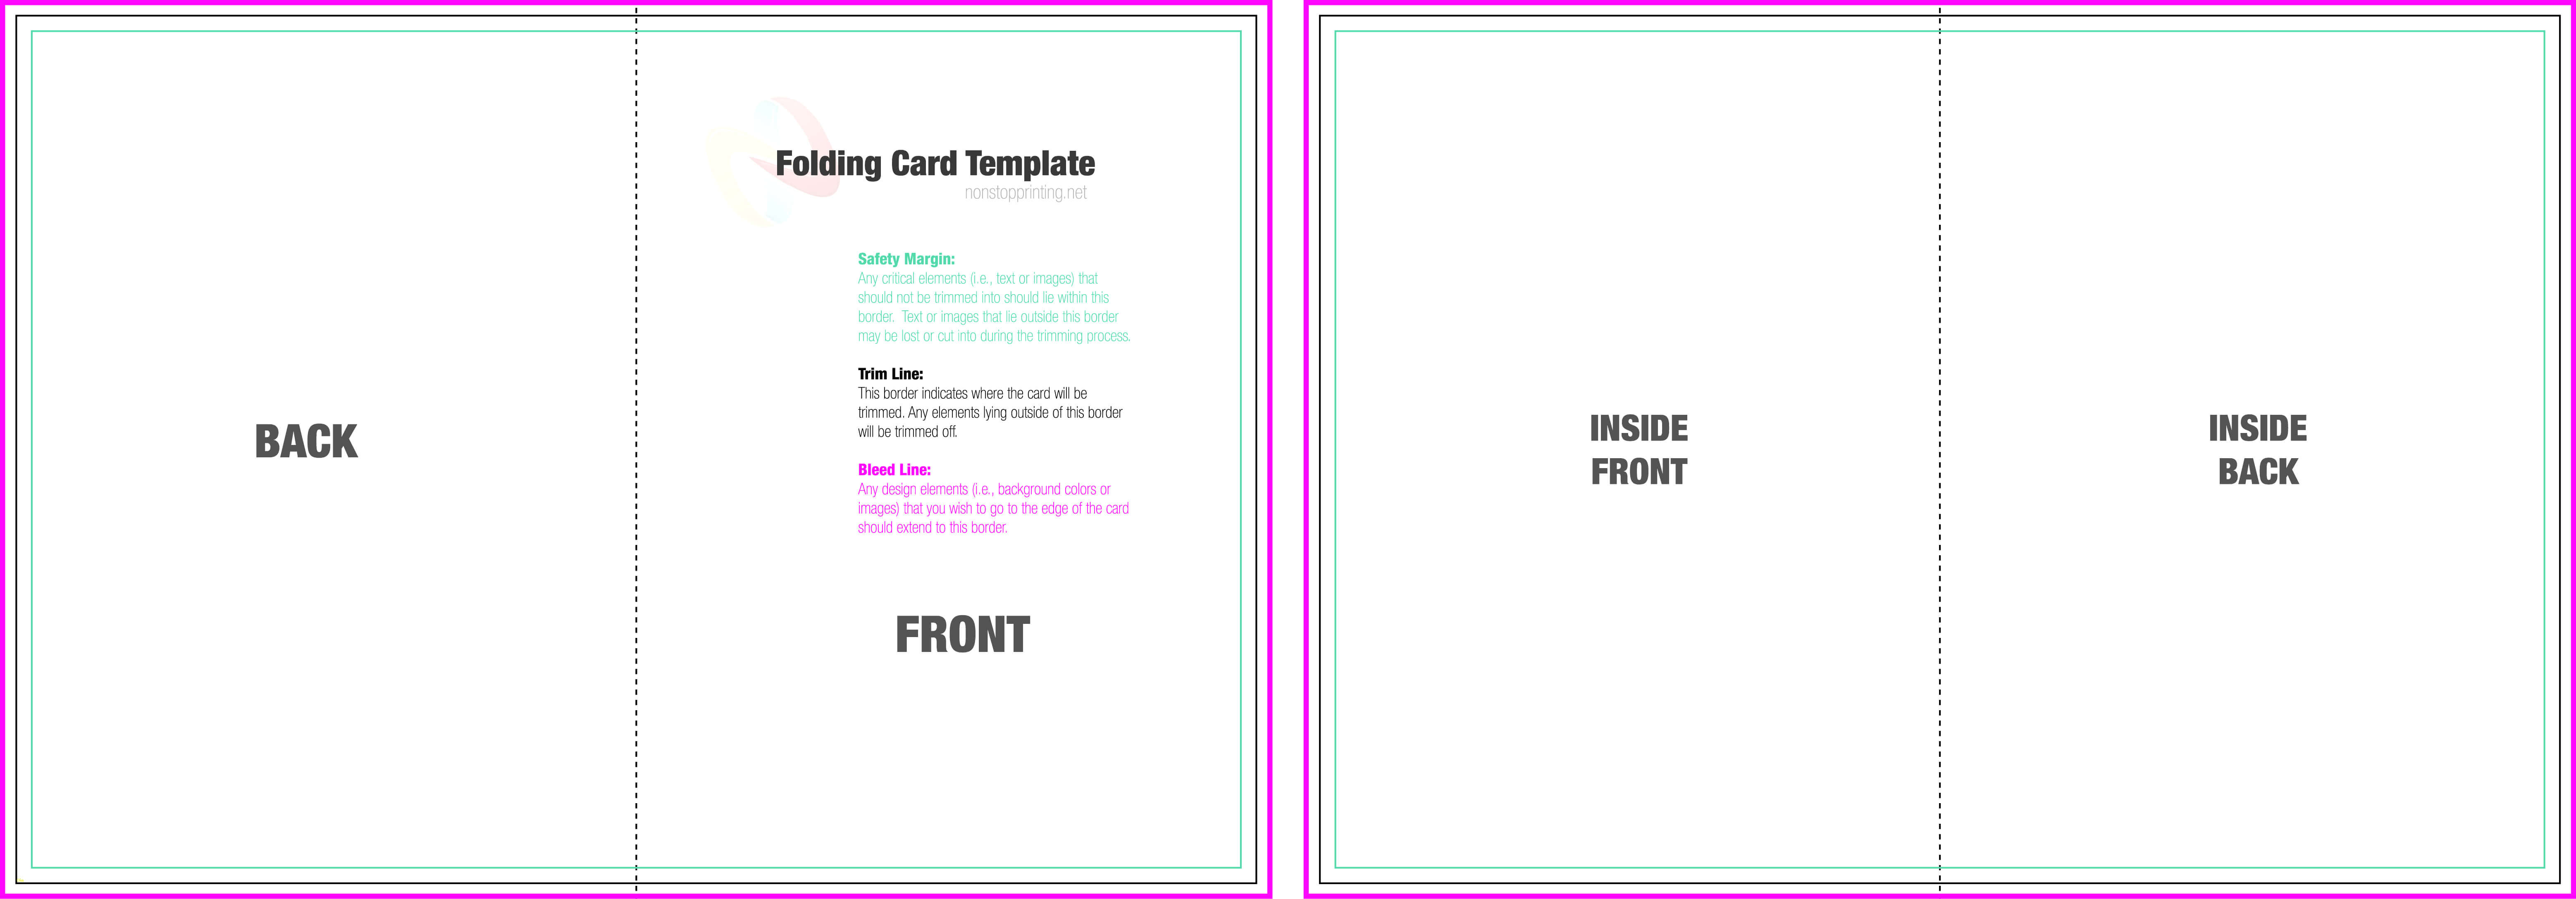 Birthday Card Template Word 2013 Quarter Fold Document Text For Quarter Fold Birthday Card Template